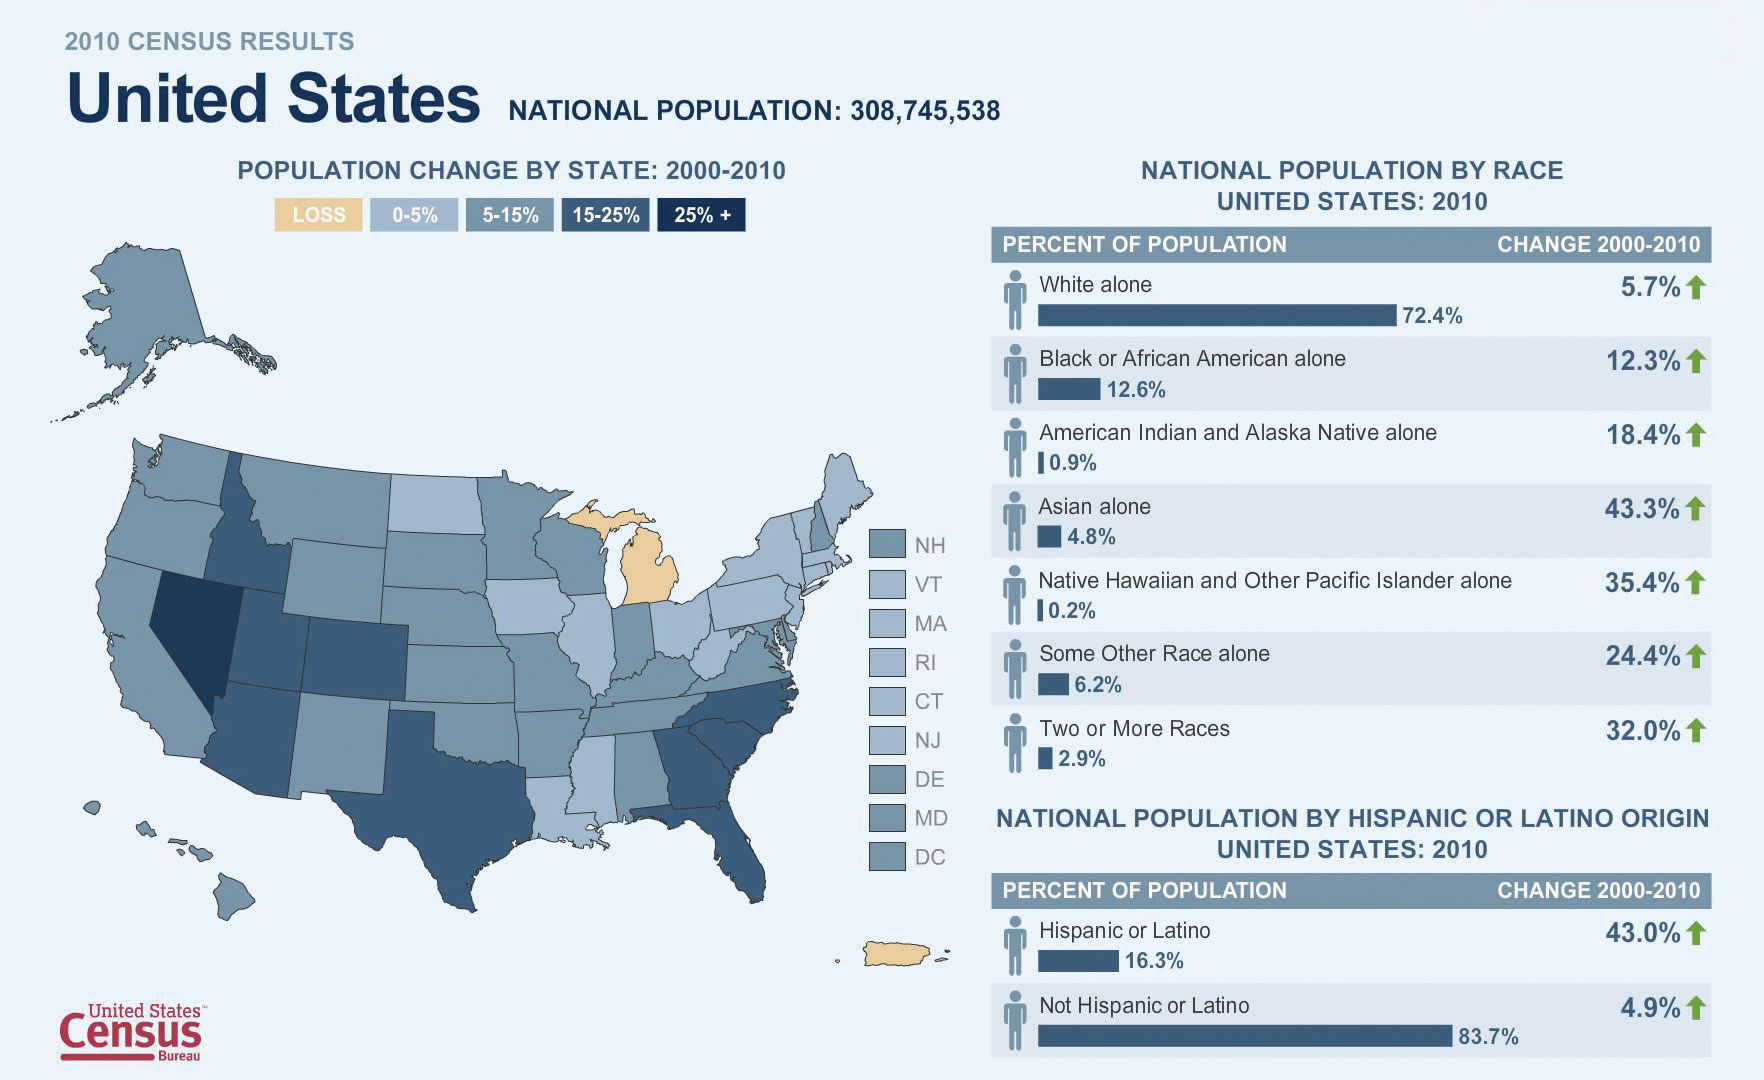 Demographic Data for the United States by Race